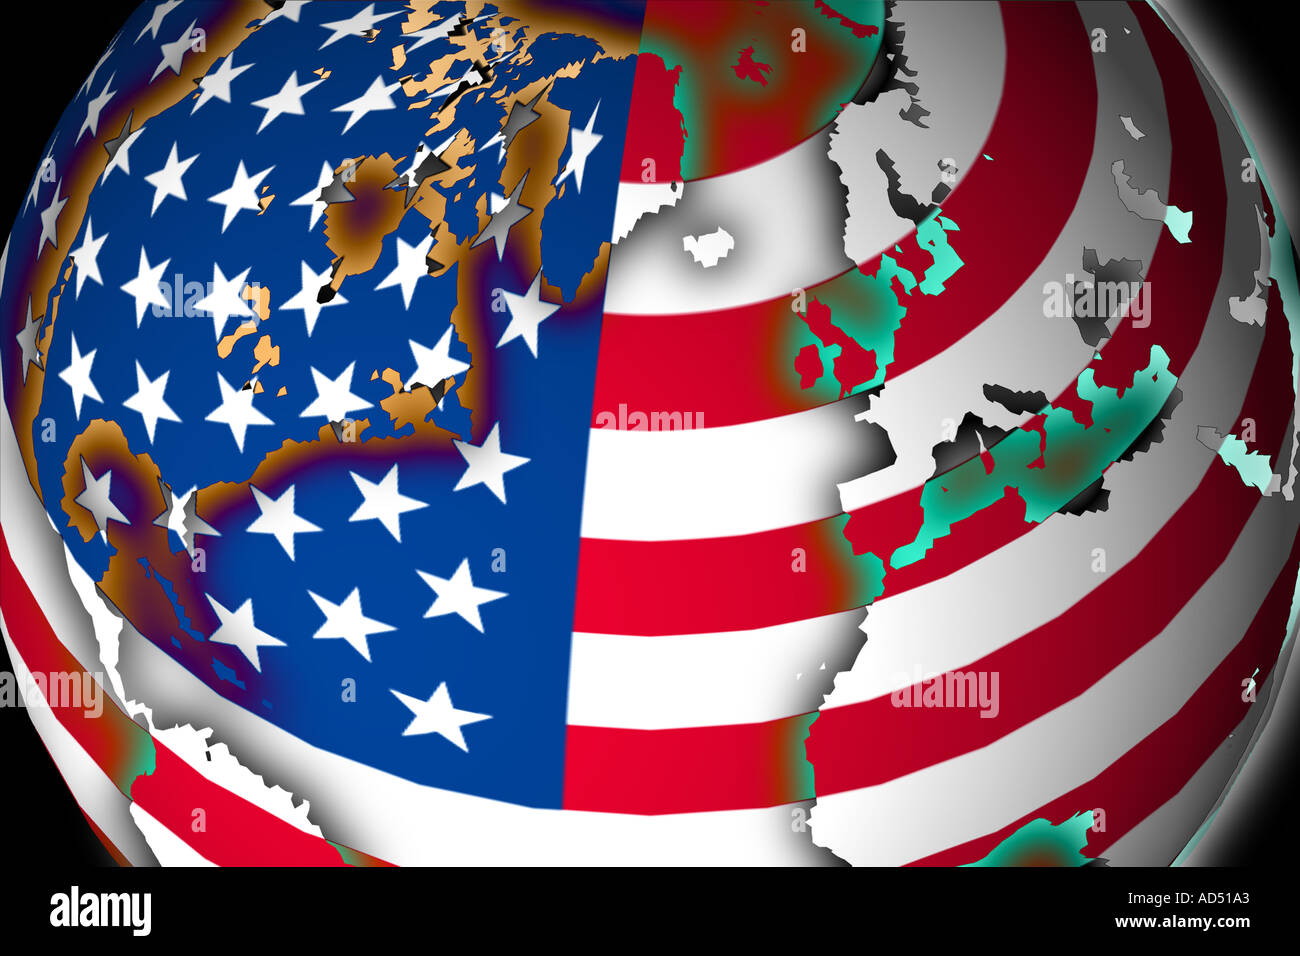 Round US Flag Ball with World Map Superimposed Stock Photo